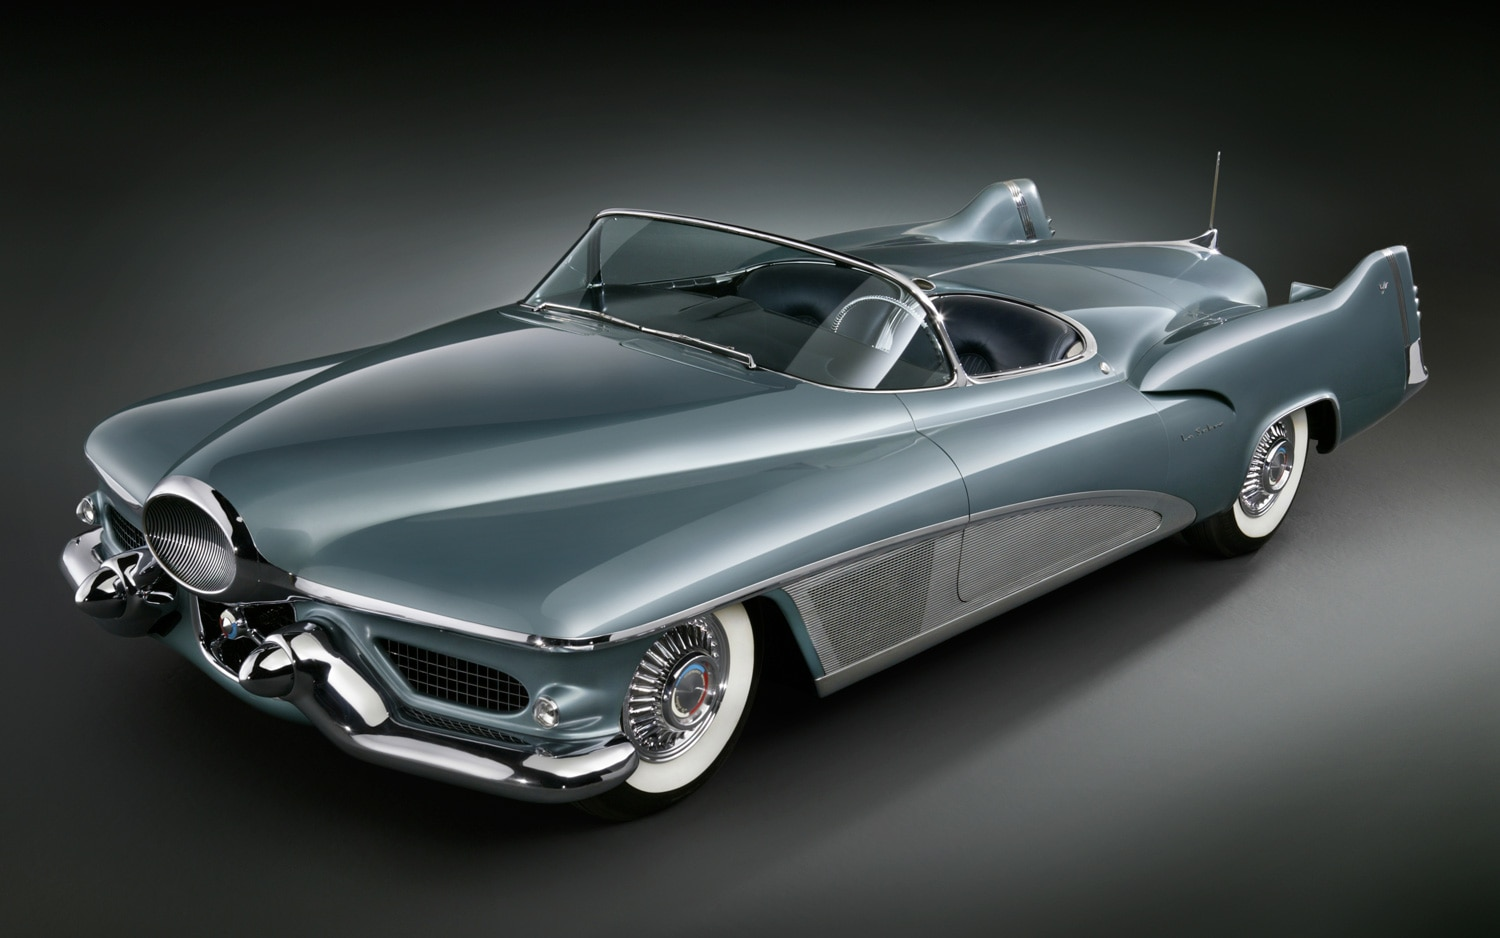 The Eleven Best Buicks Of Past 110 Years 1951 Buick Riviera Convertible Show More